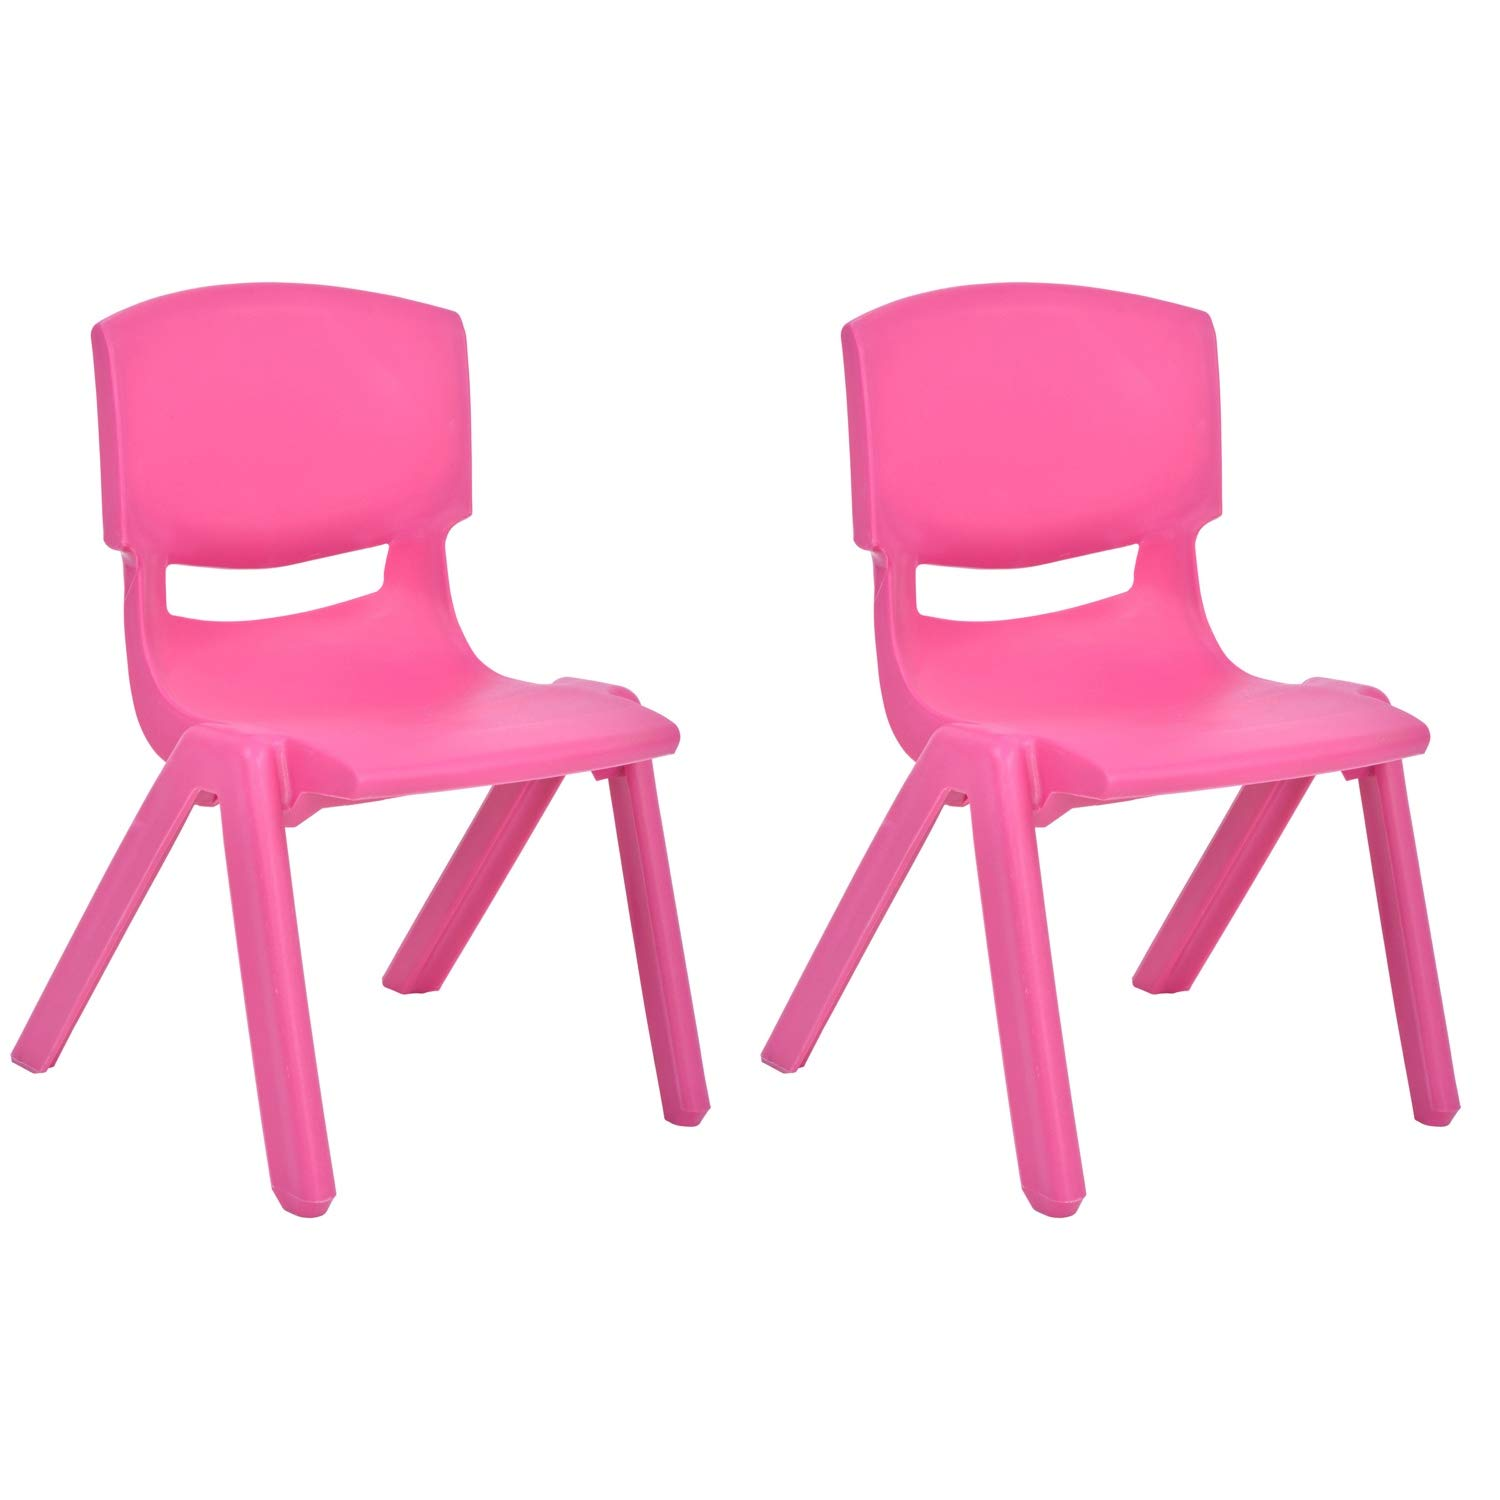 JOON Stackable Plastic Kids Learning Chairs, 20.5x12.75X11 Inches, The Perfect Chair for Playrooms, Schools, Daycares and Home, Rose, (2-Pack) by JOON